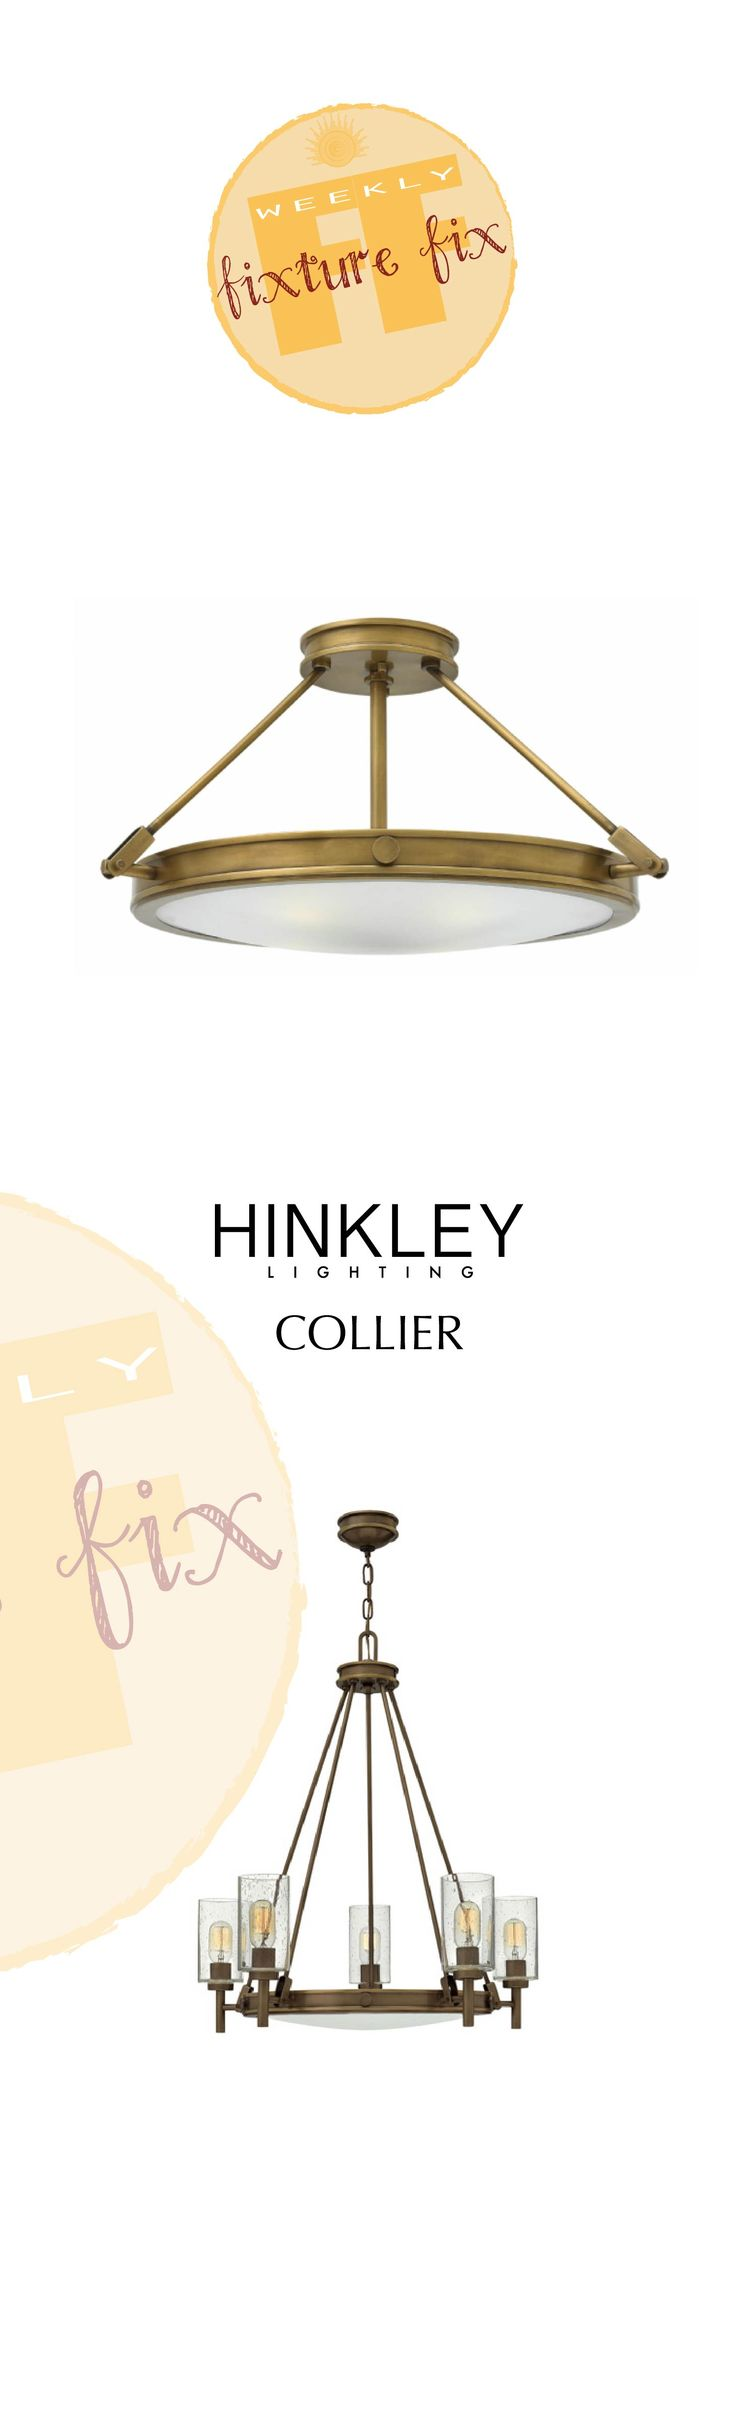 It's Weekly fixture fix Wednesday! Today's is Hinkley Lighting's mature family, Collier, now in new finishes: heritage brass & light oiled bronze. Contact us for more details!